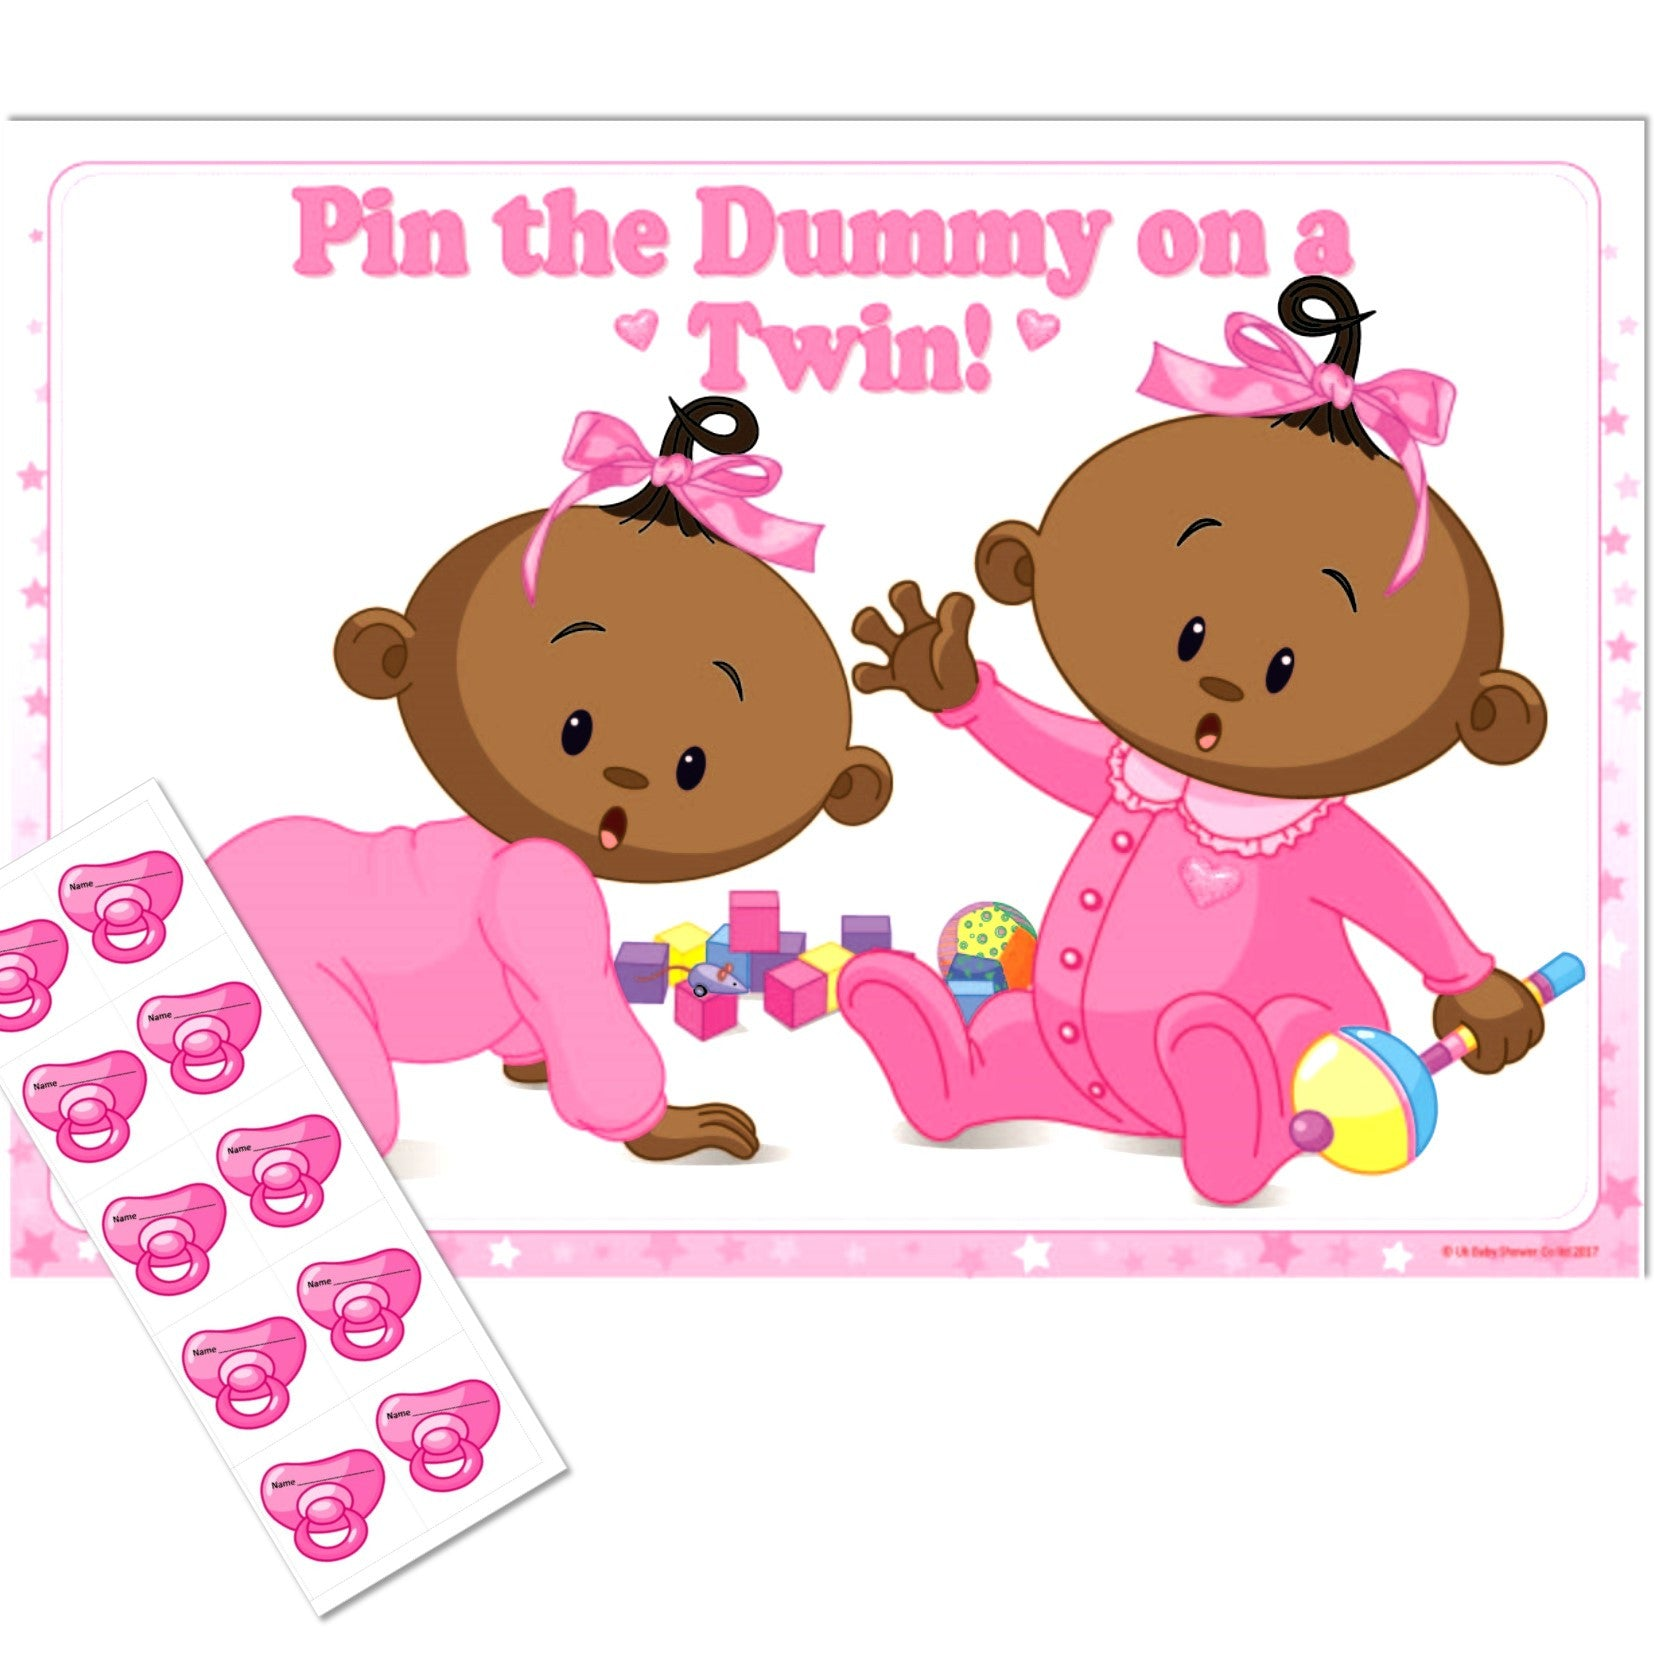 Ethnic Pin the Dummy on a Twin Party Game